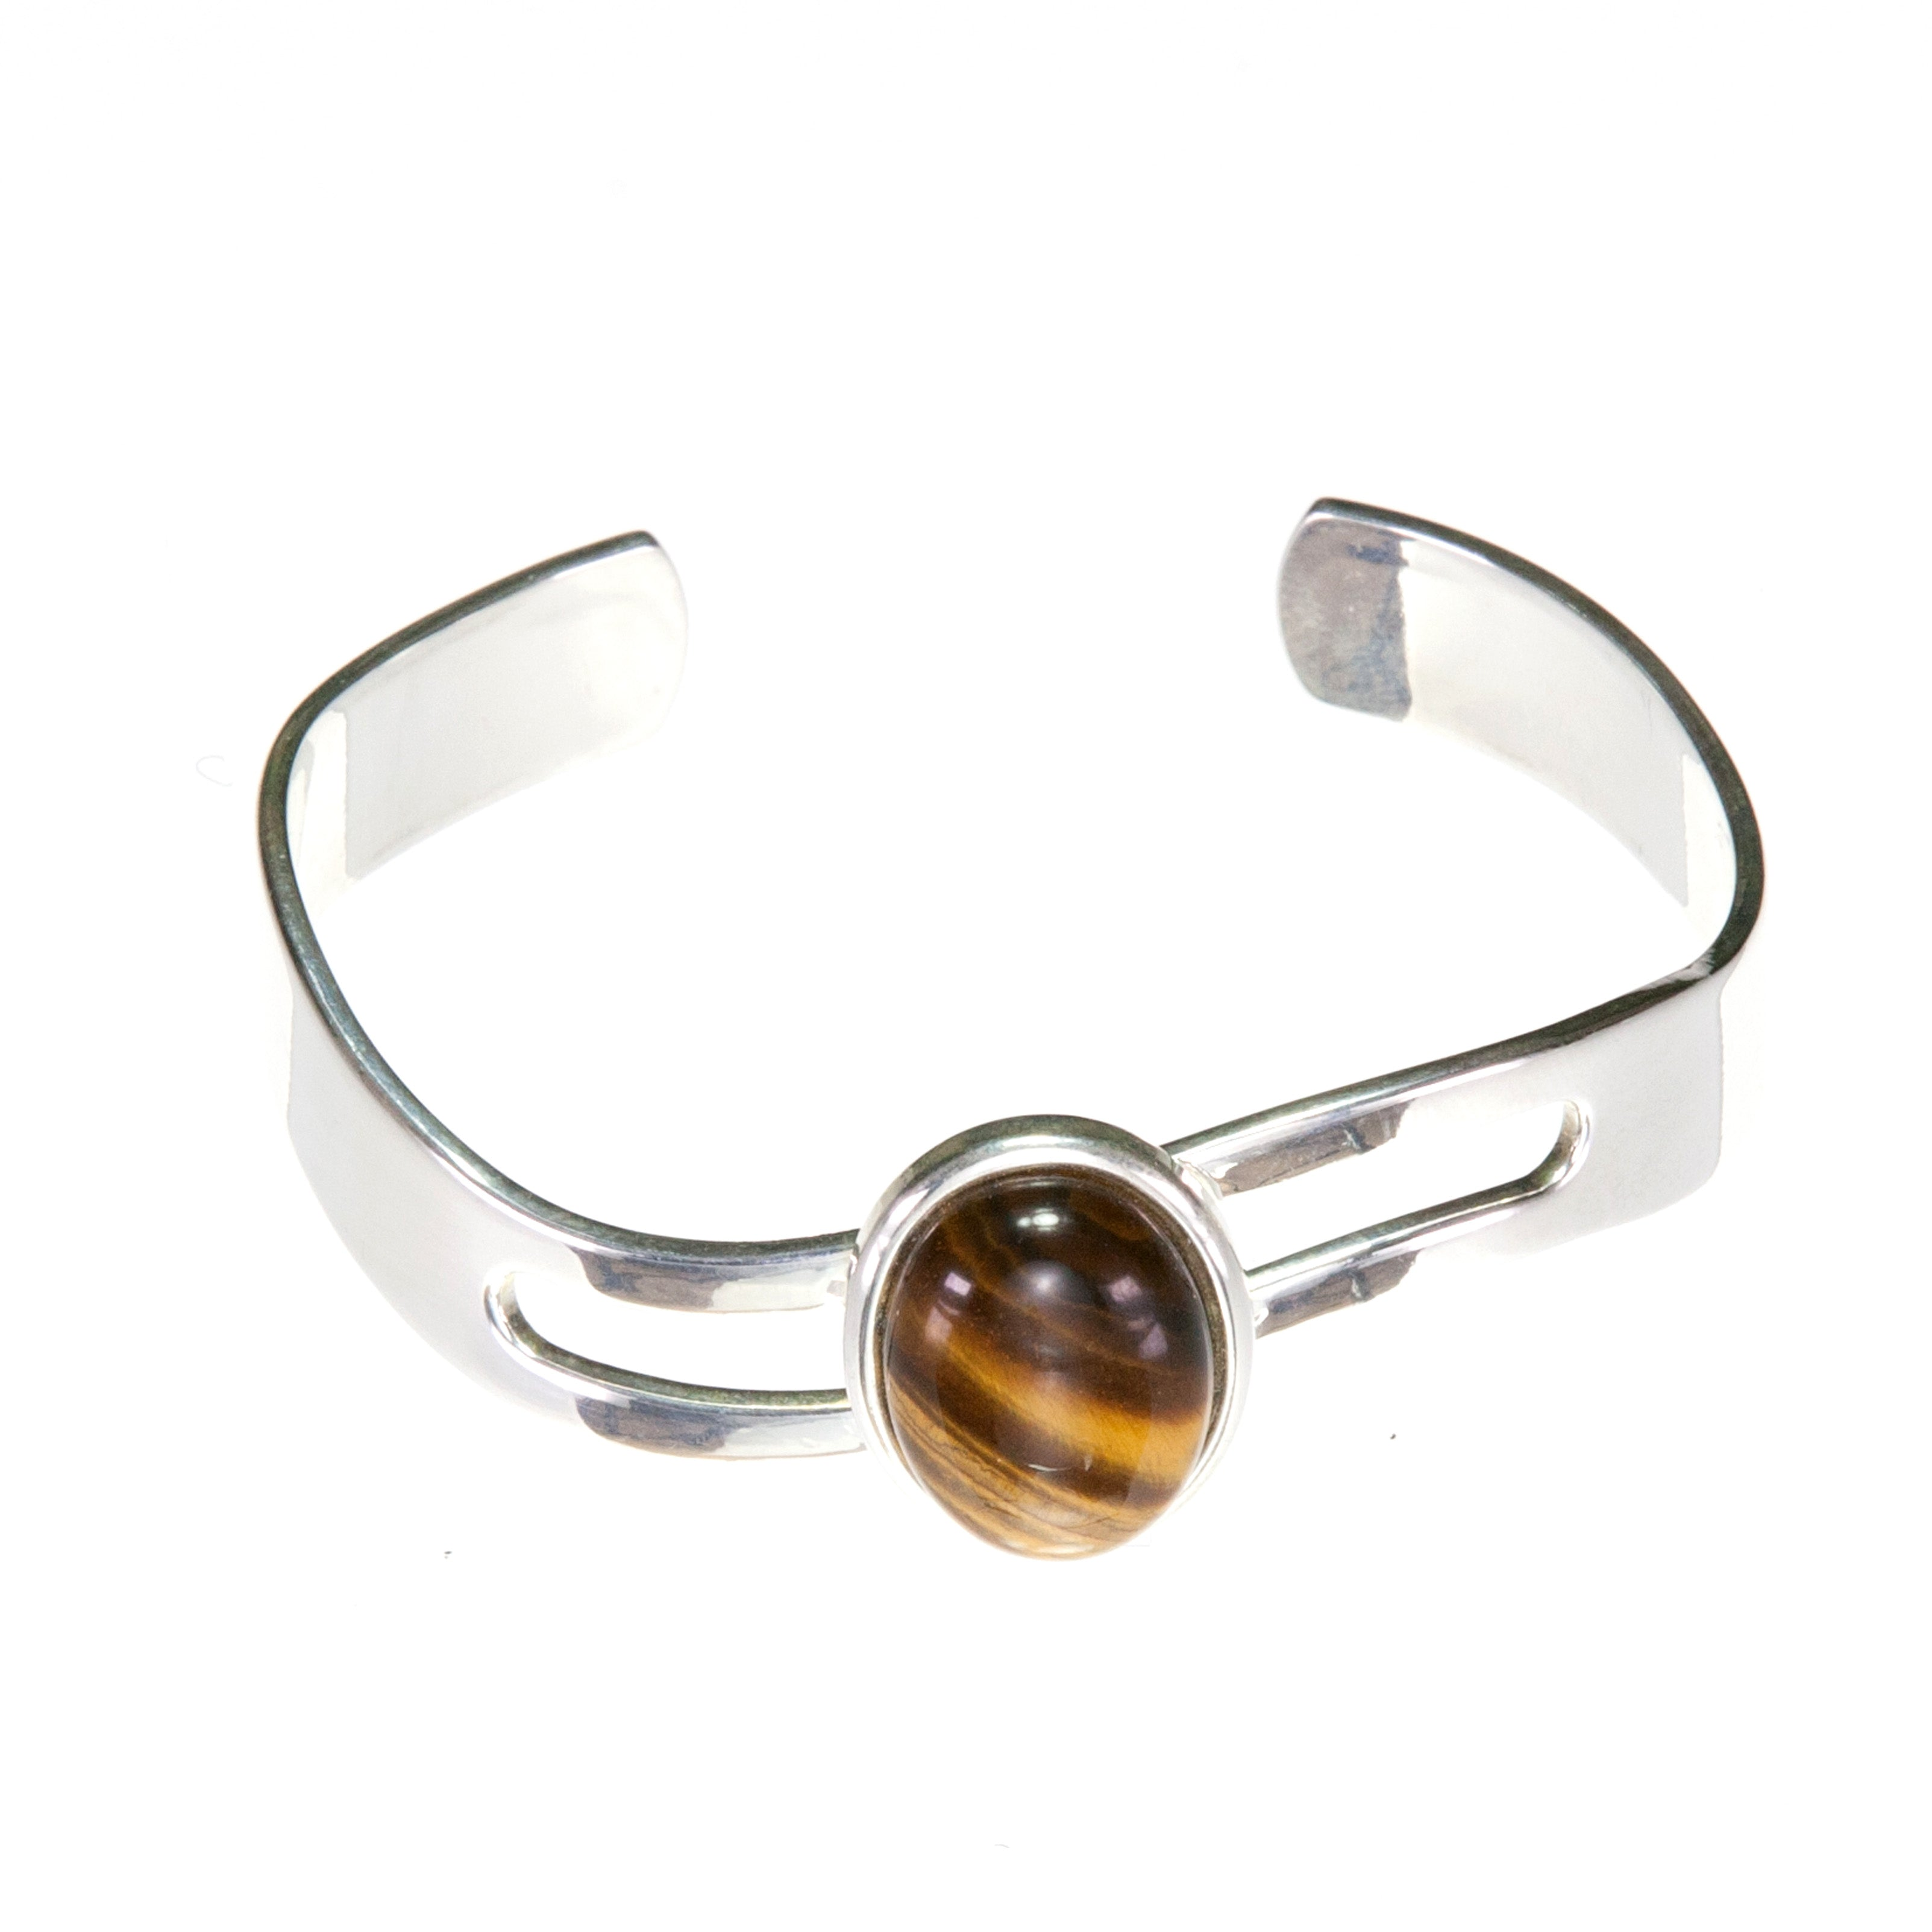 Adjustable Bangle with flattering wave shaped adjustable cuff and large Golden Brown Tiger's Eye Cabochon